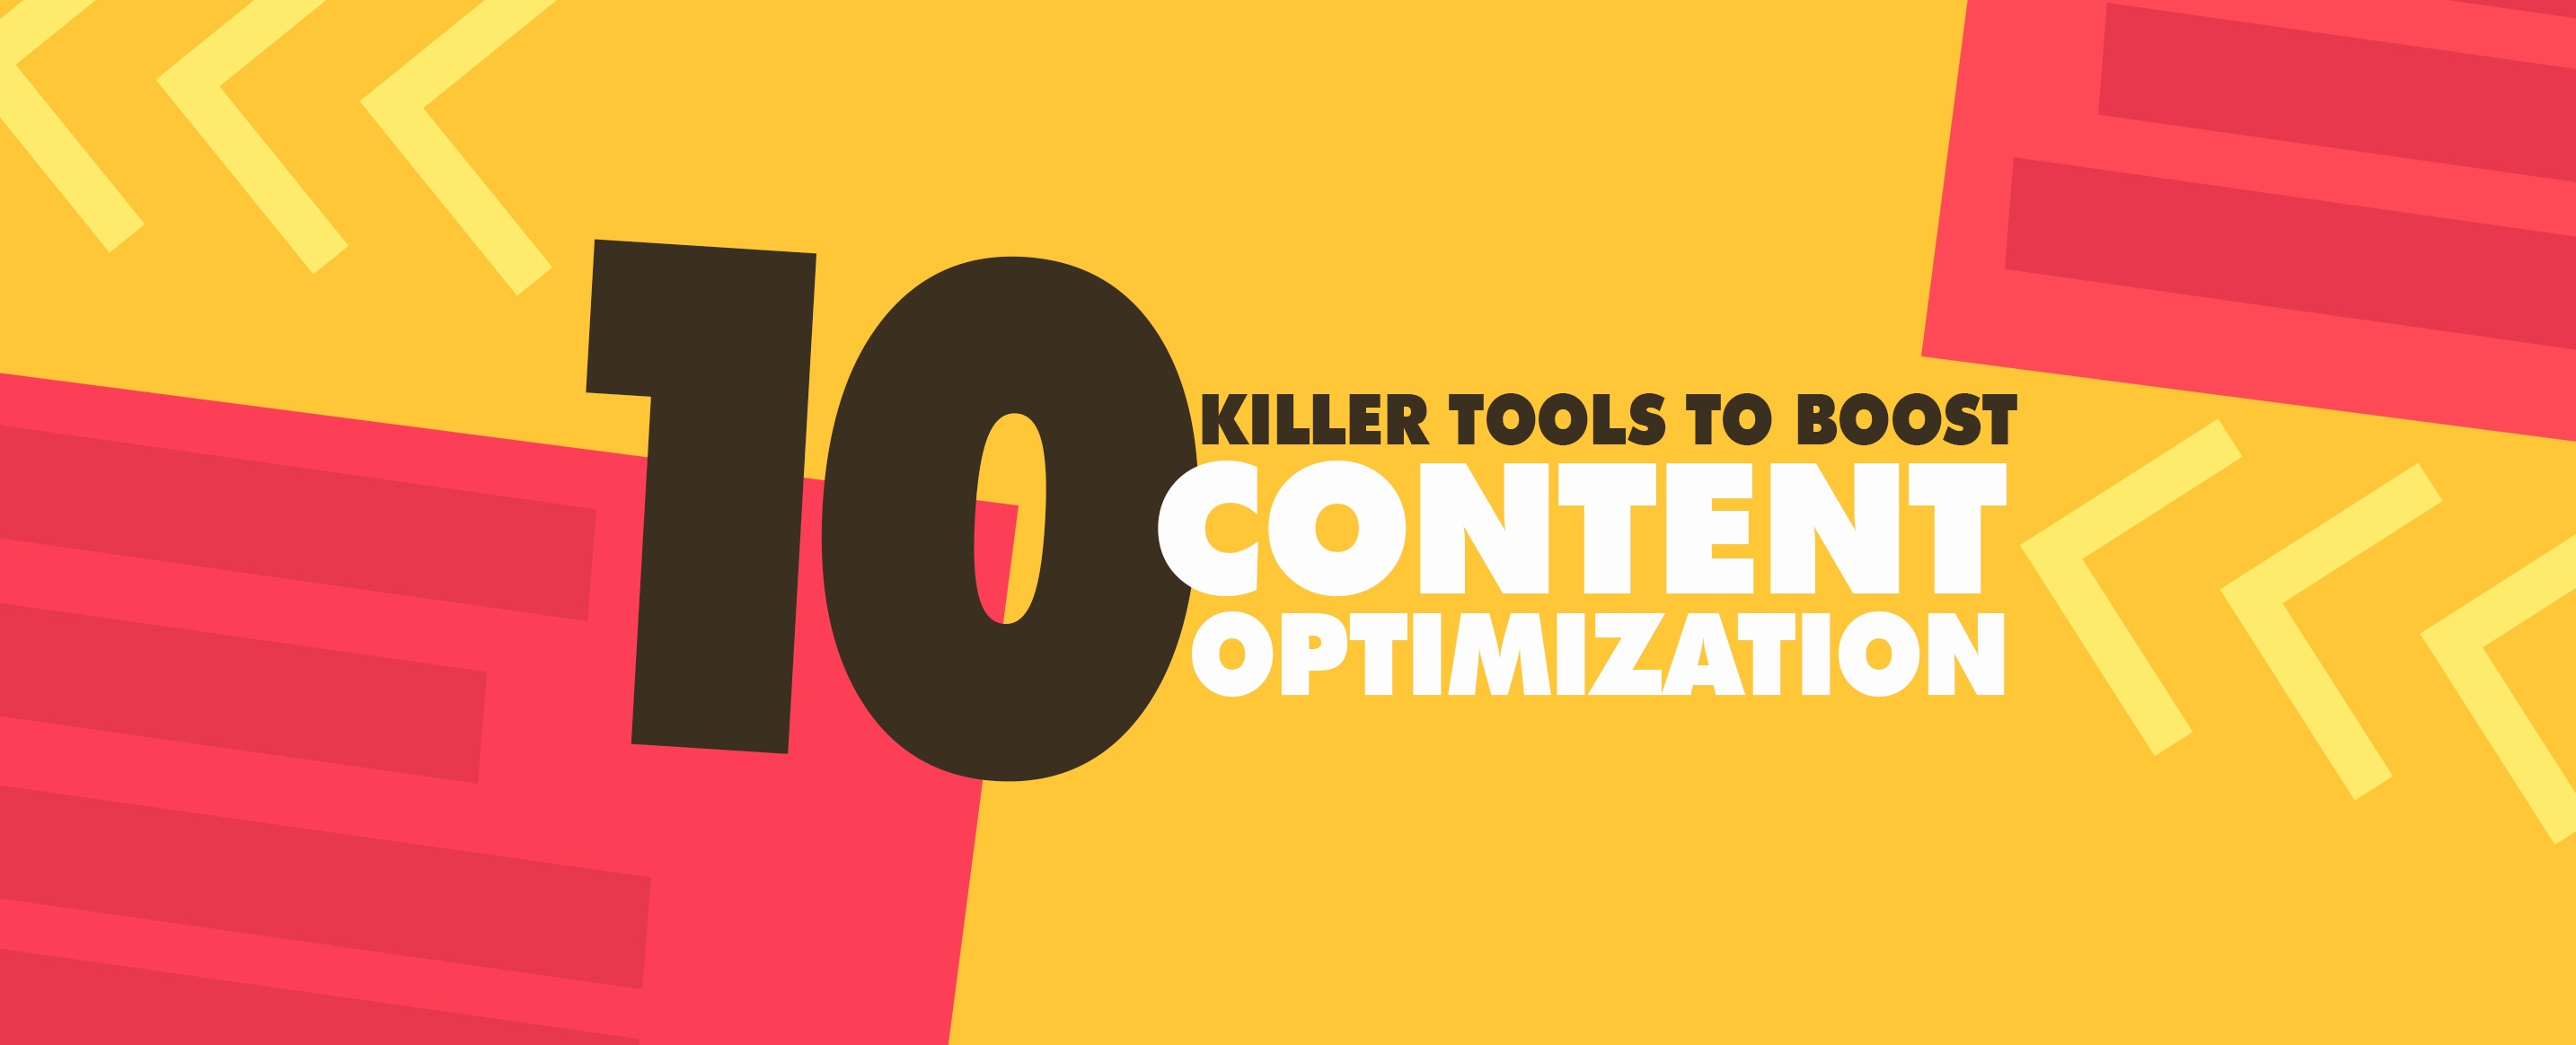 10-Killer-Tools-to-Boost-Content-Optimization